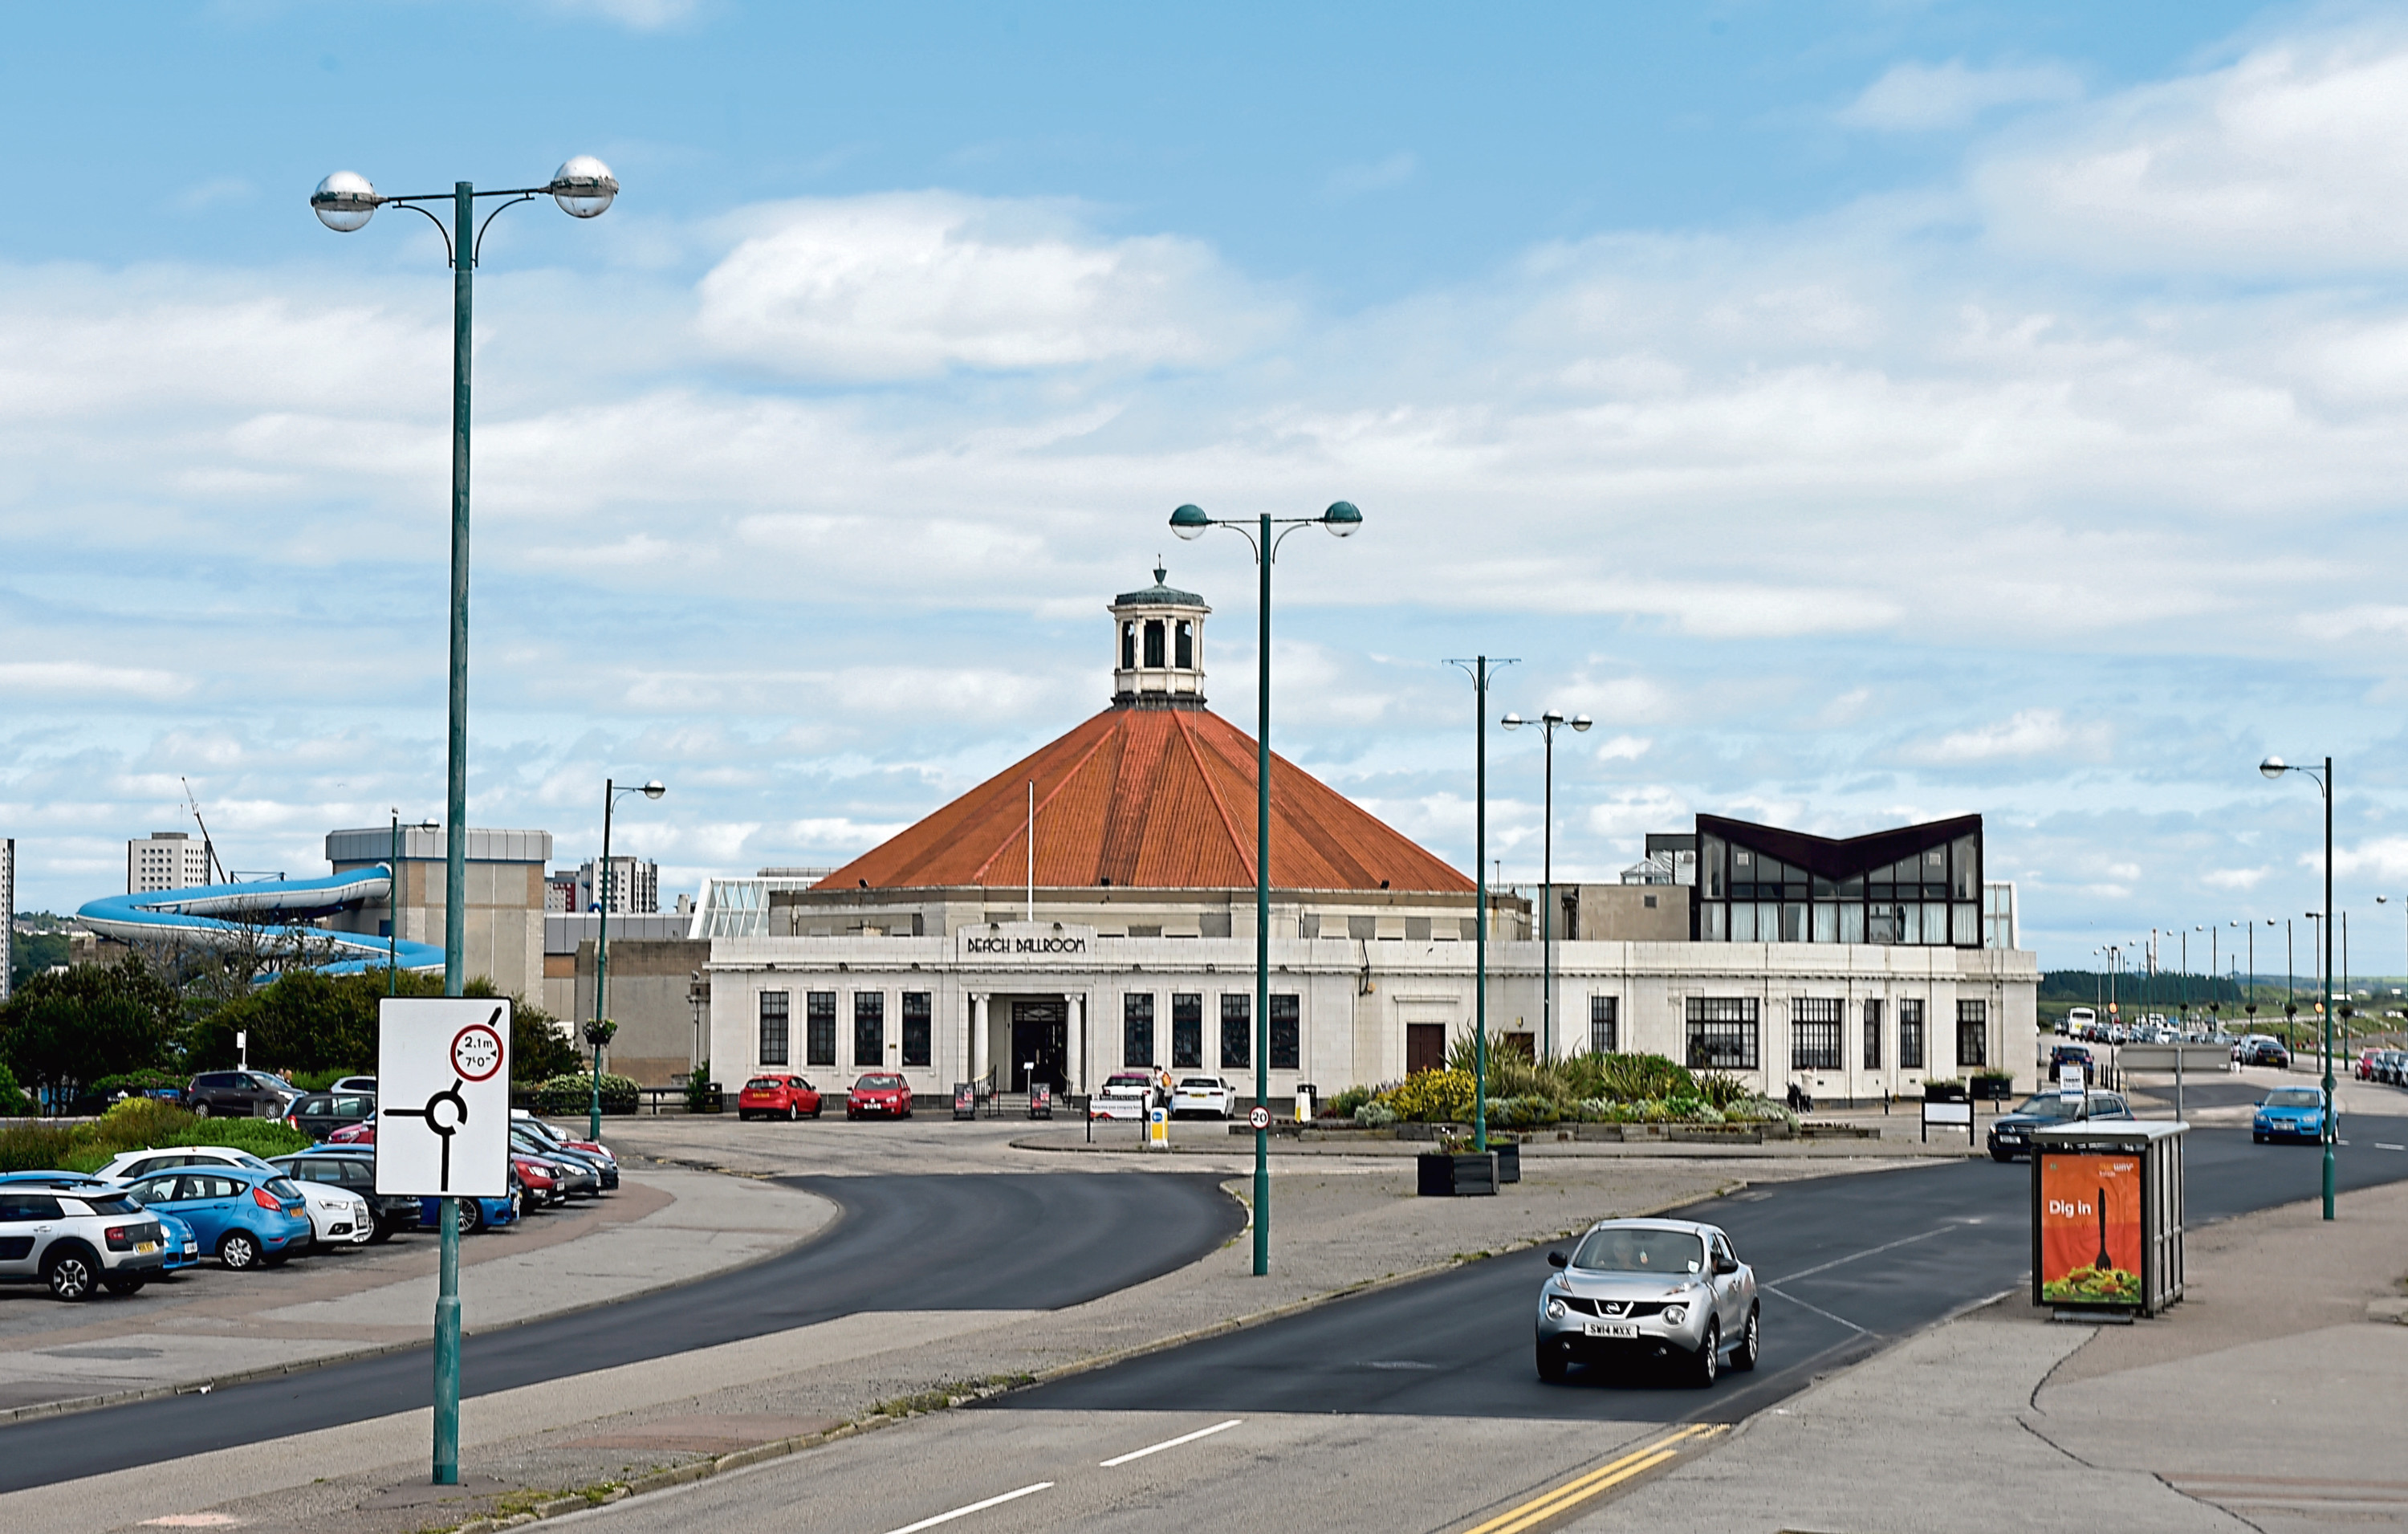 The proposed changes are mainly on Beach Boulevard and Ellon Road. Picture by Kath Flannery